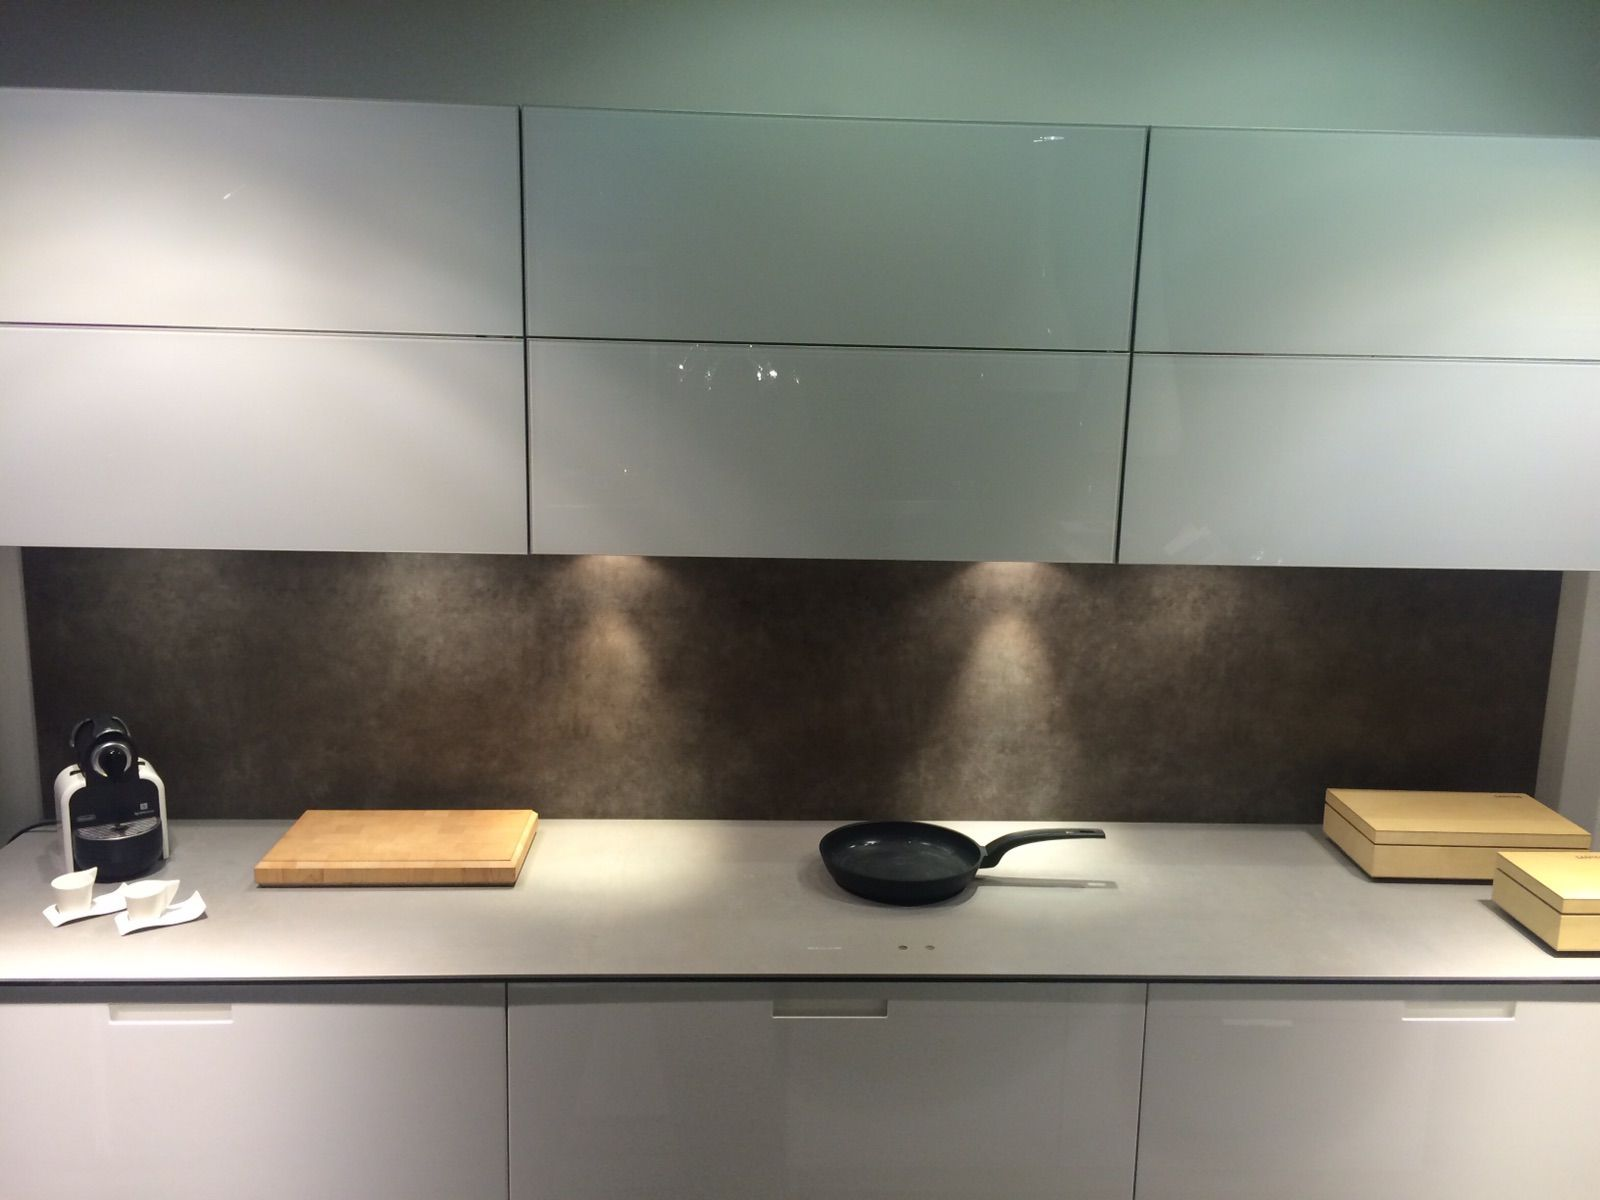 Kitchen Island Hob this magic hob within a worktop is called tpb tech. its an